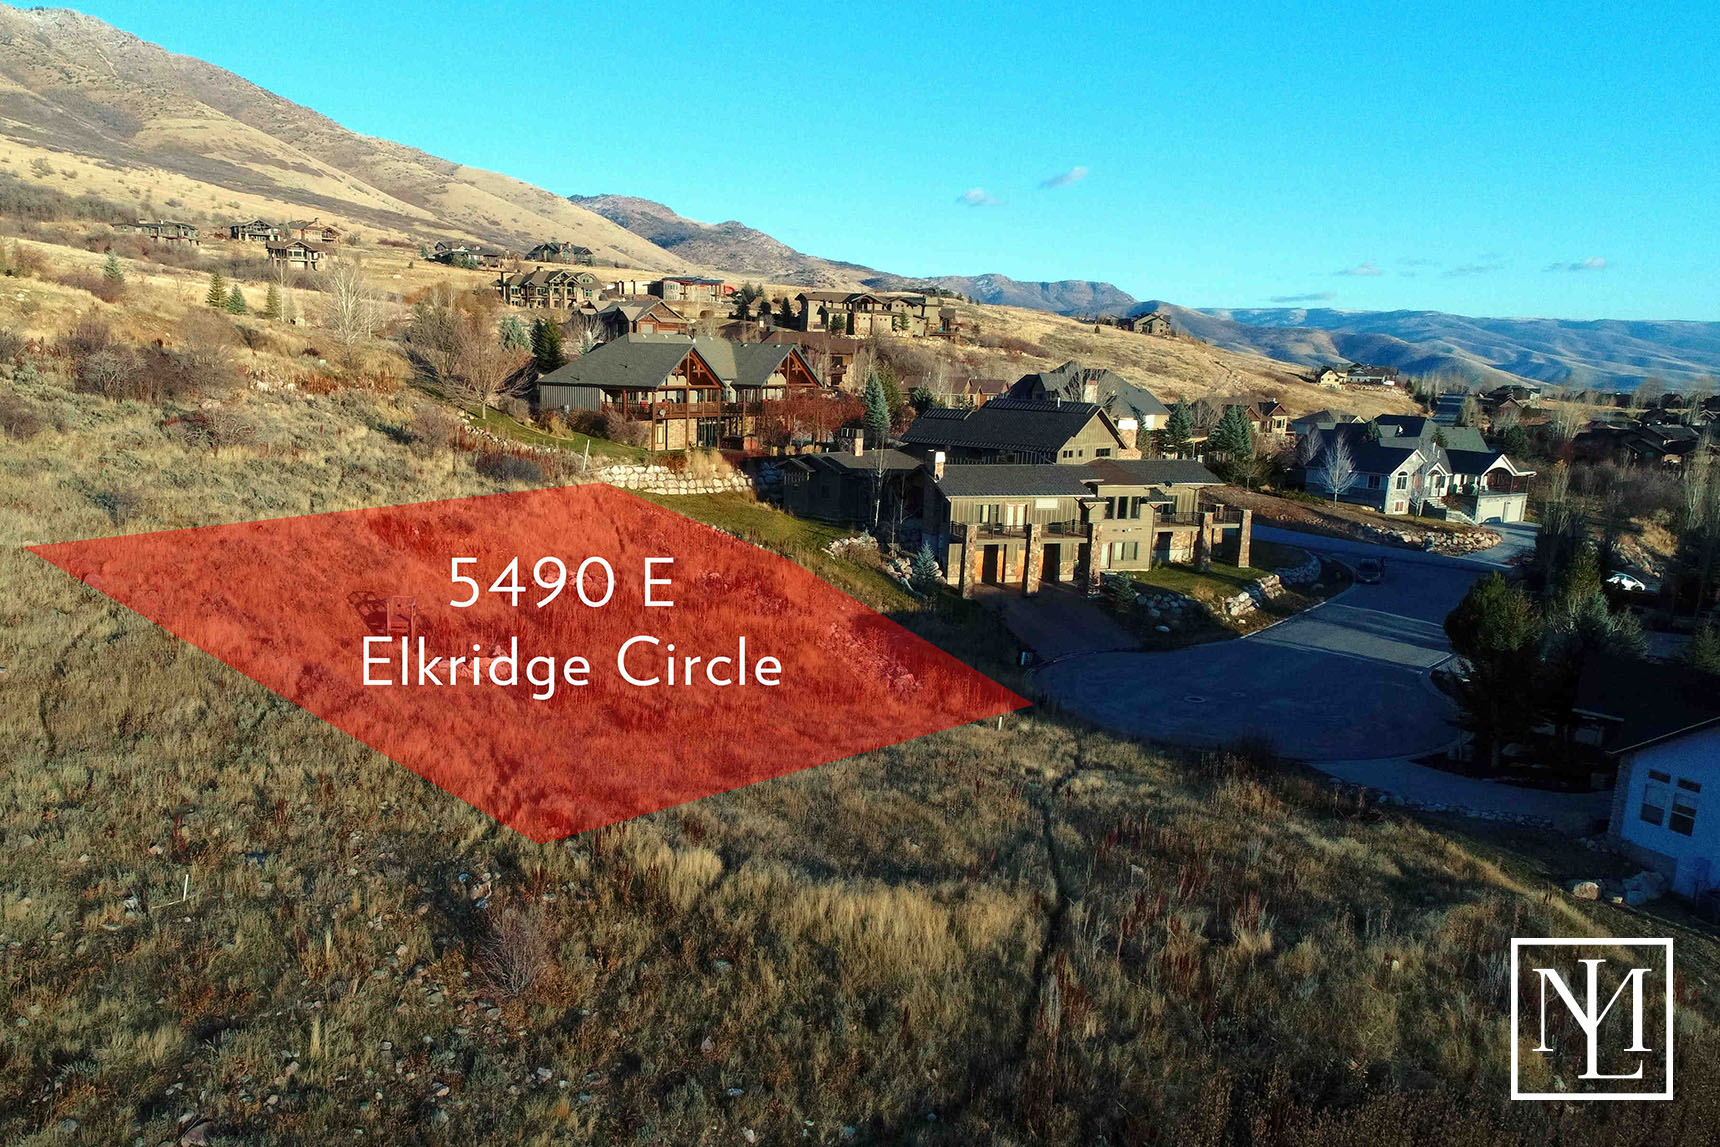 5490 E Elkridge Circle Eden UT 84301 08